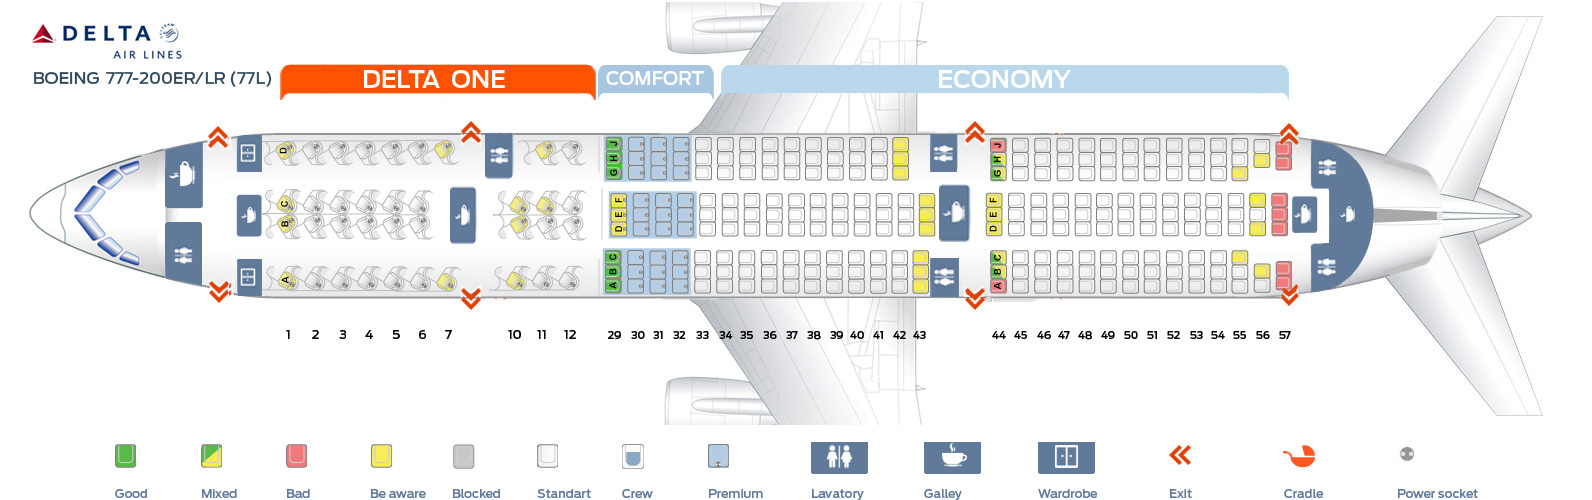 Seat map boeing 777 200 delta airlines best seats in plane